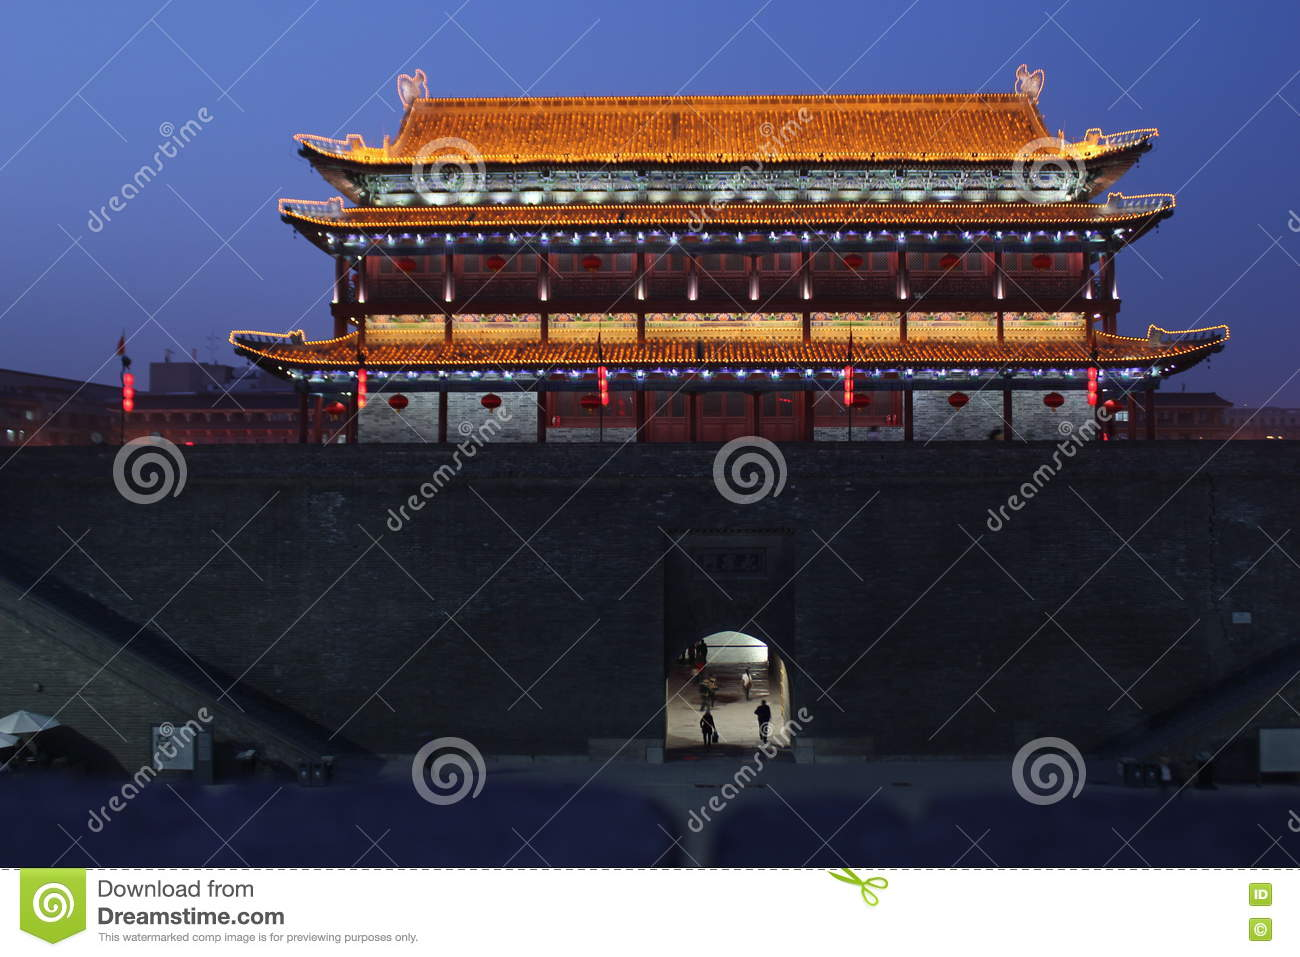 Discovering China: Xian city wall and South gate